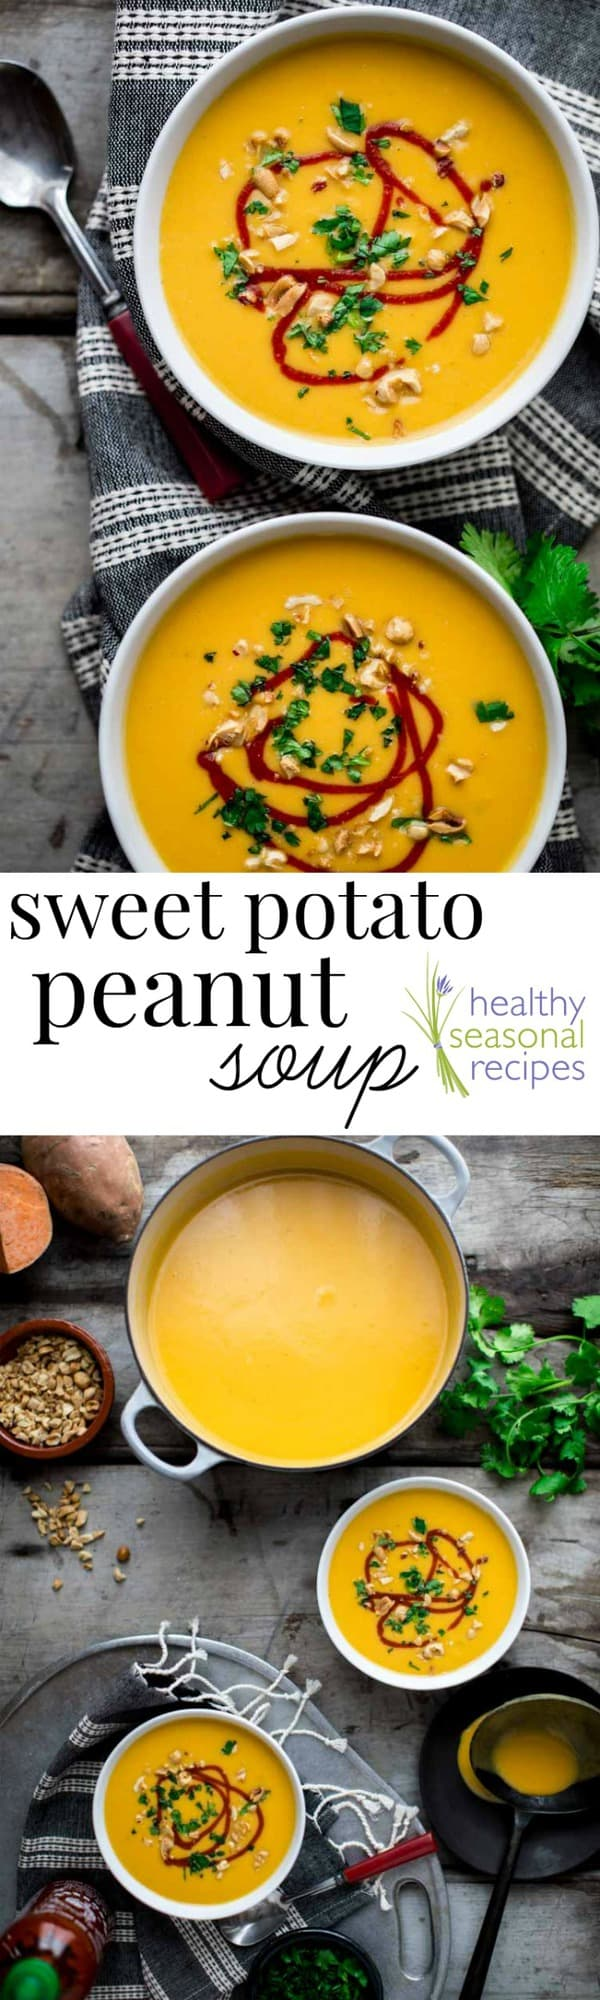 healthy sweet potato recipes sweet potato and peanut soup healthy seasonal recipes 30296